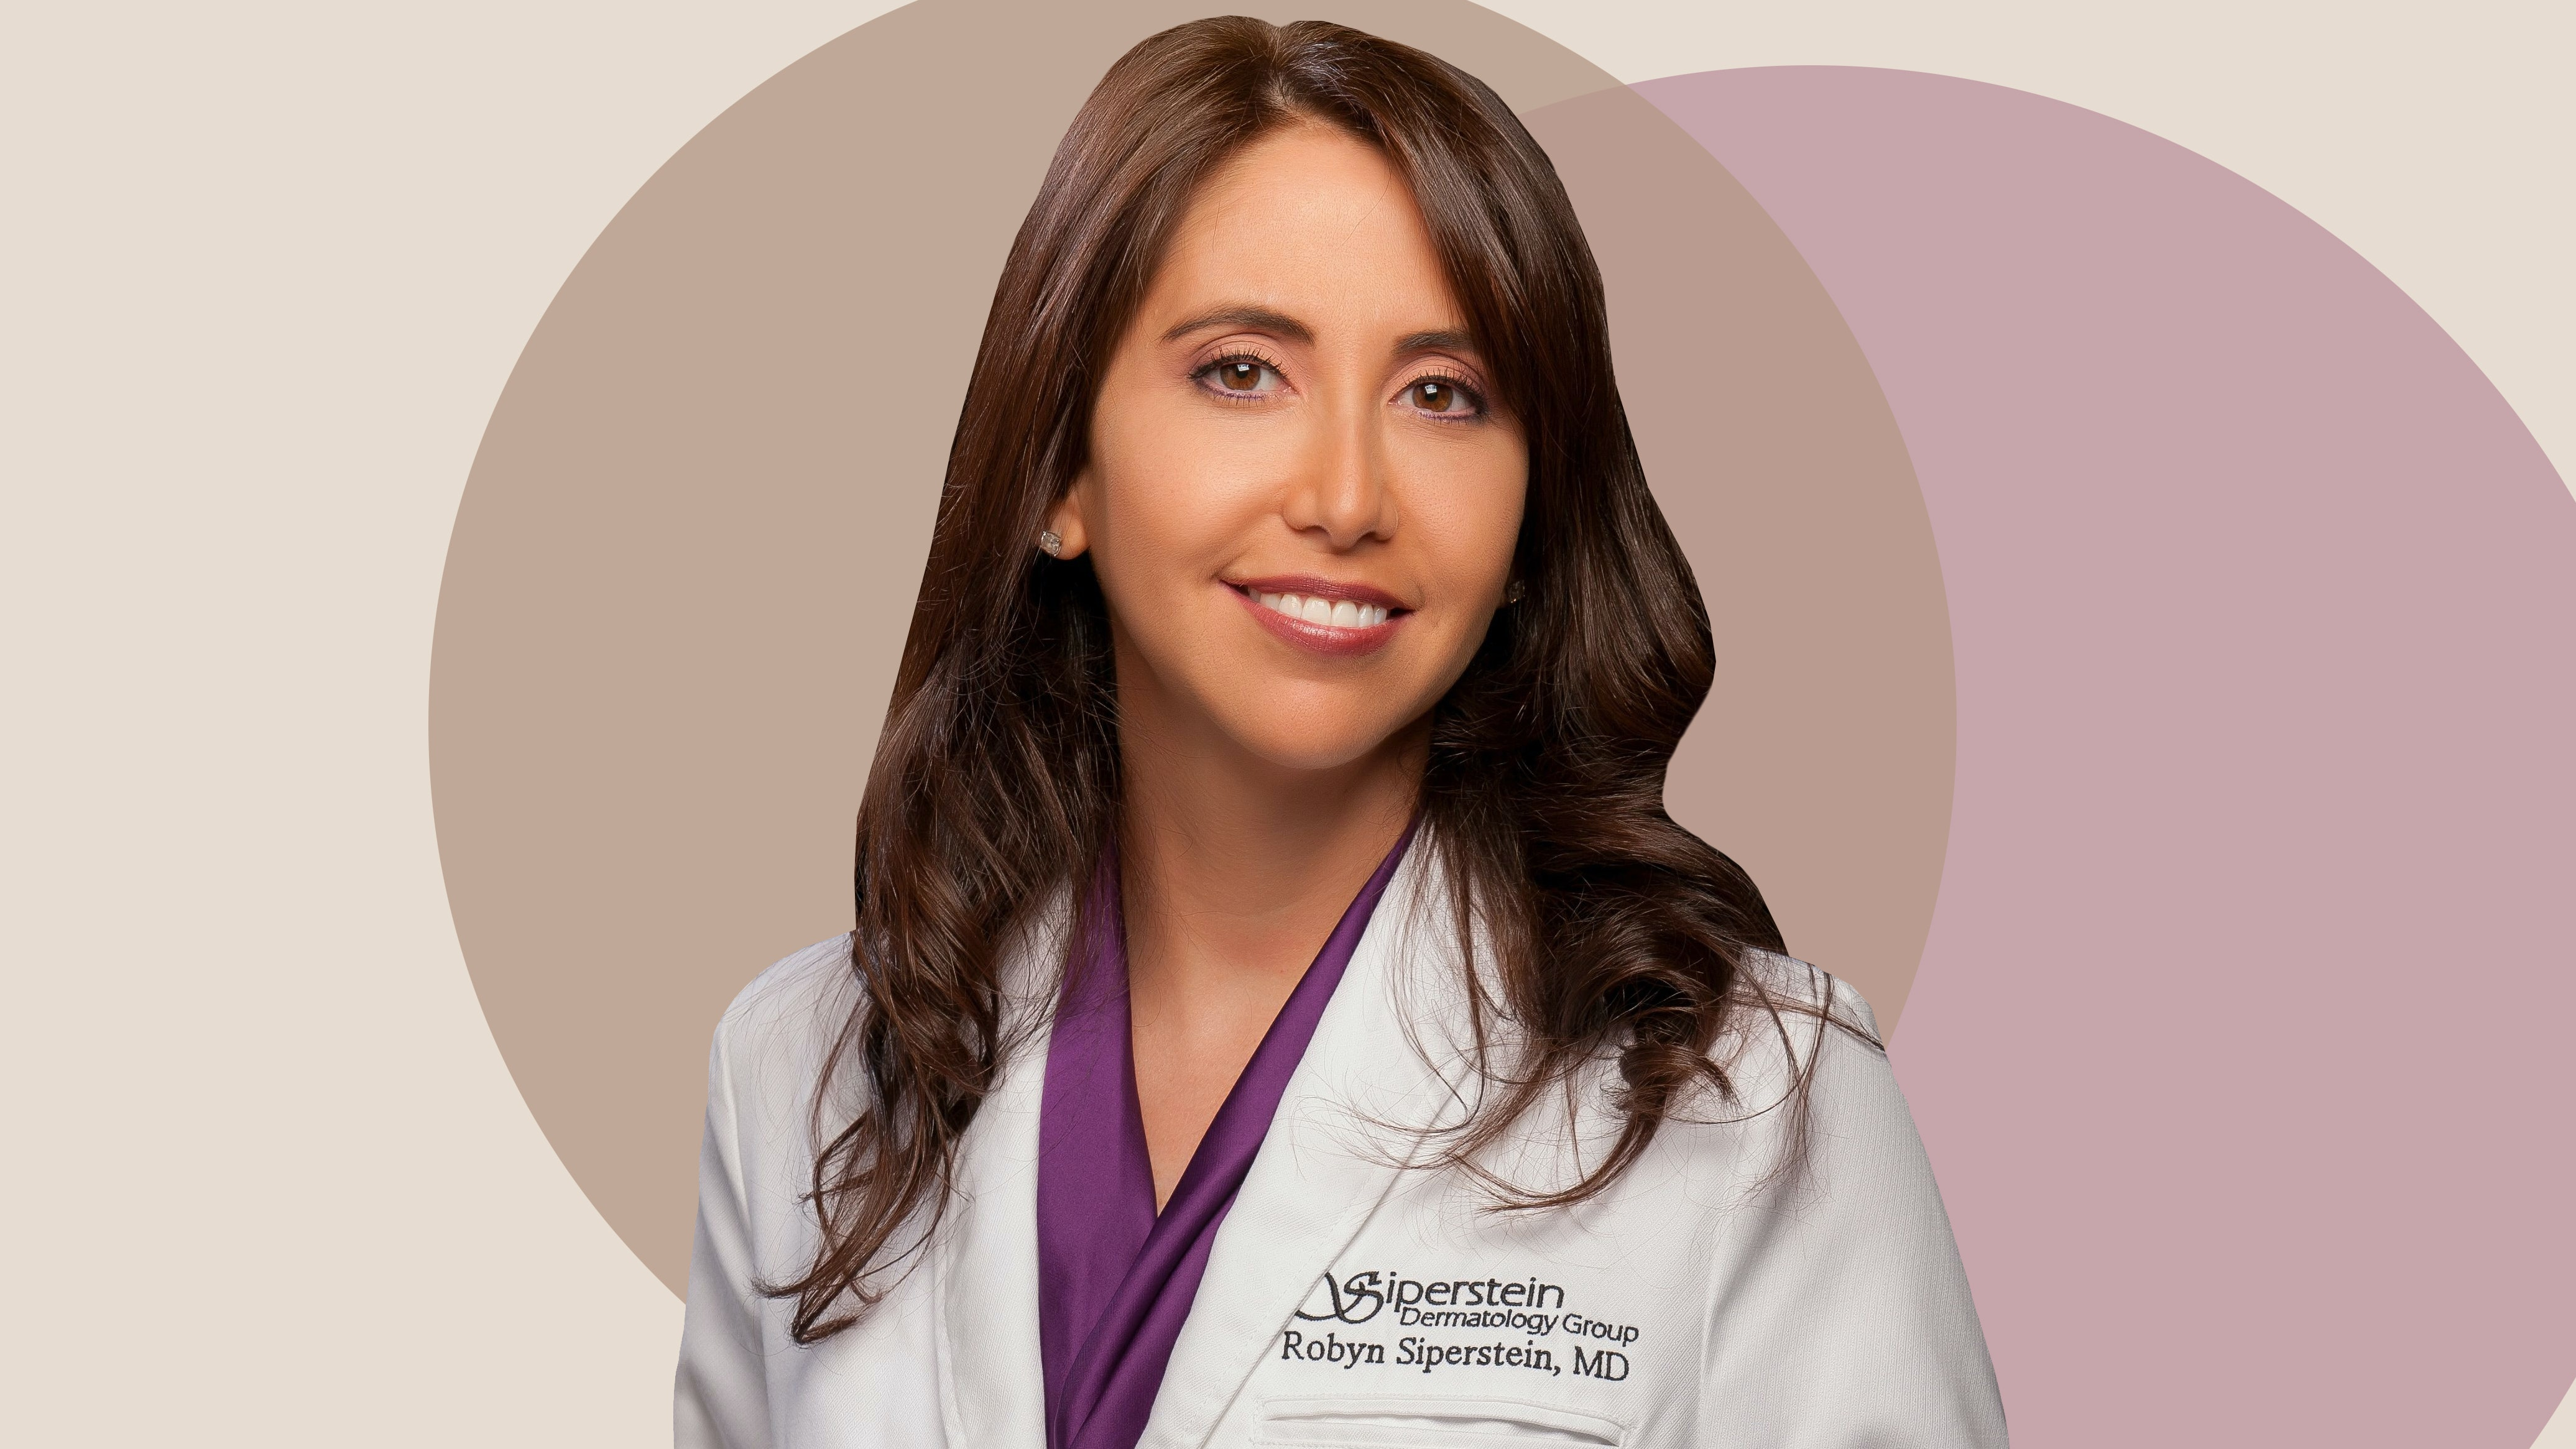 Florida Derm Dr. Robyn Siperstein on Aesthetics and the 1 Skincare Step Too Many People Forget